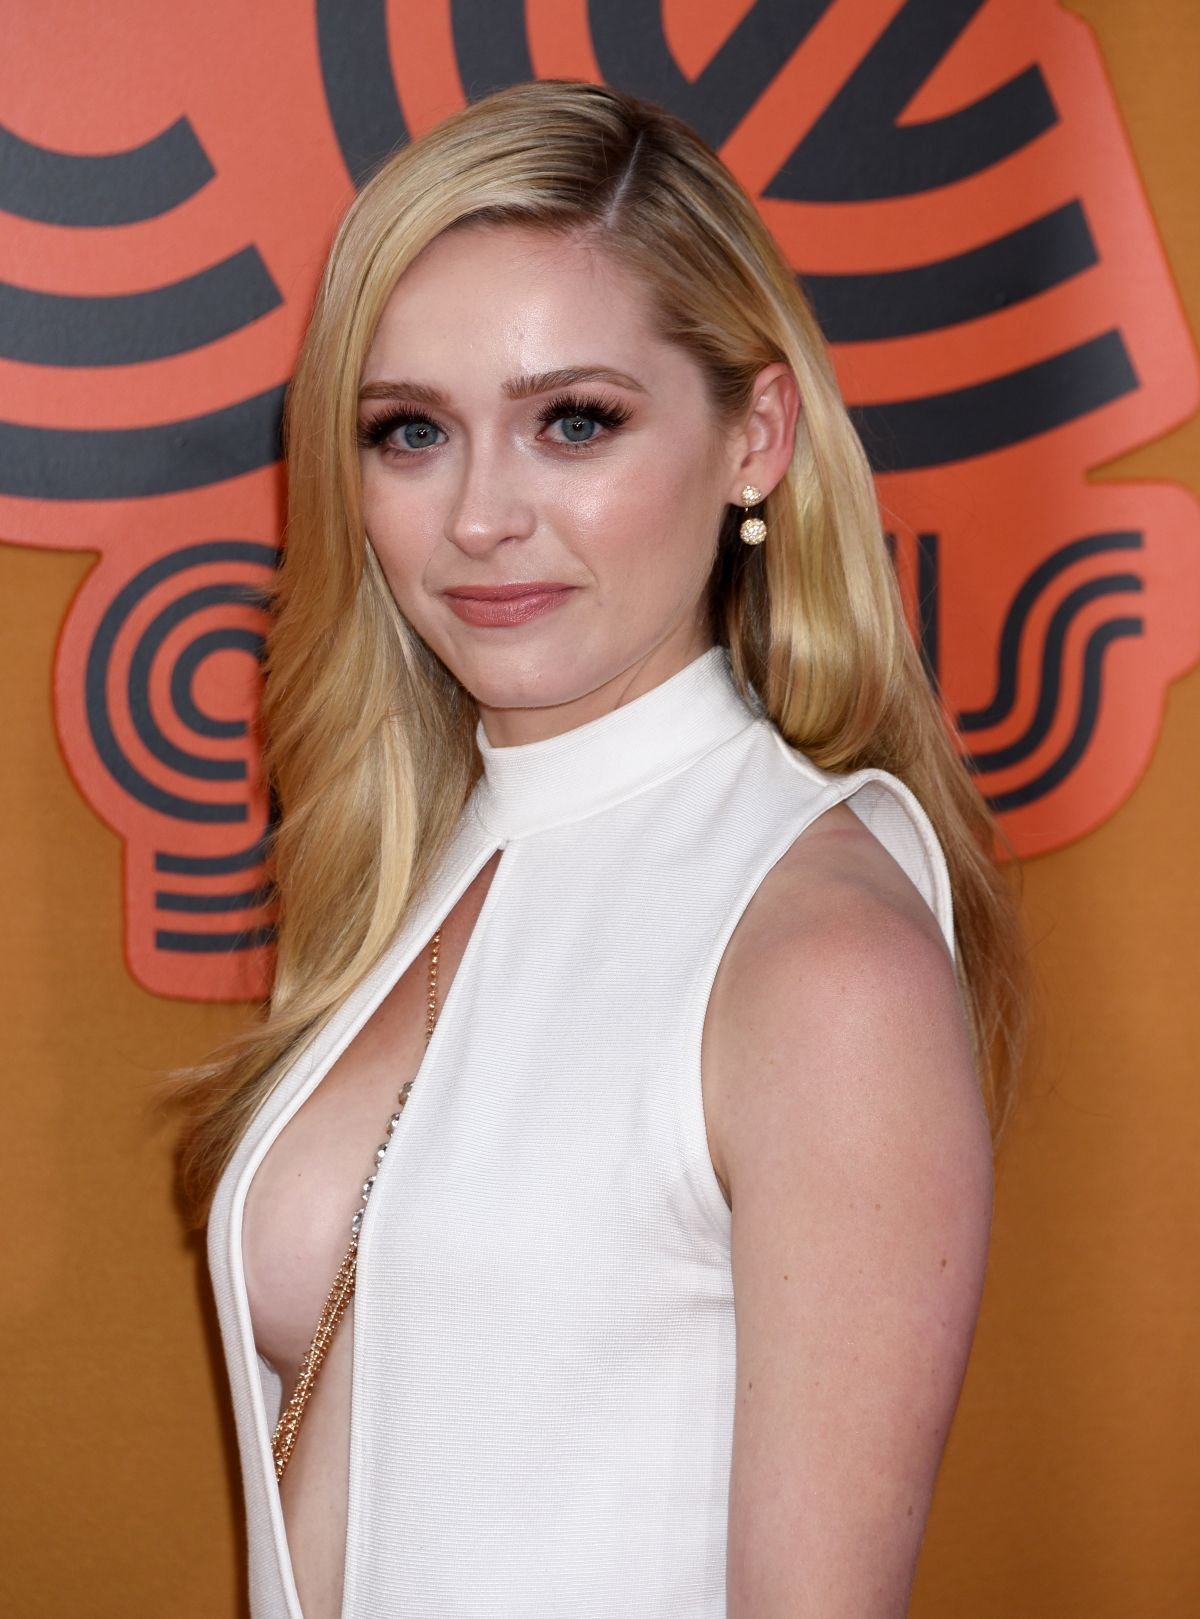 Greer Grammer At The Nice Guys Premiere In Hollywood 05